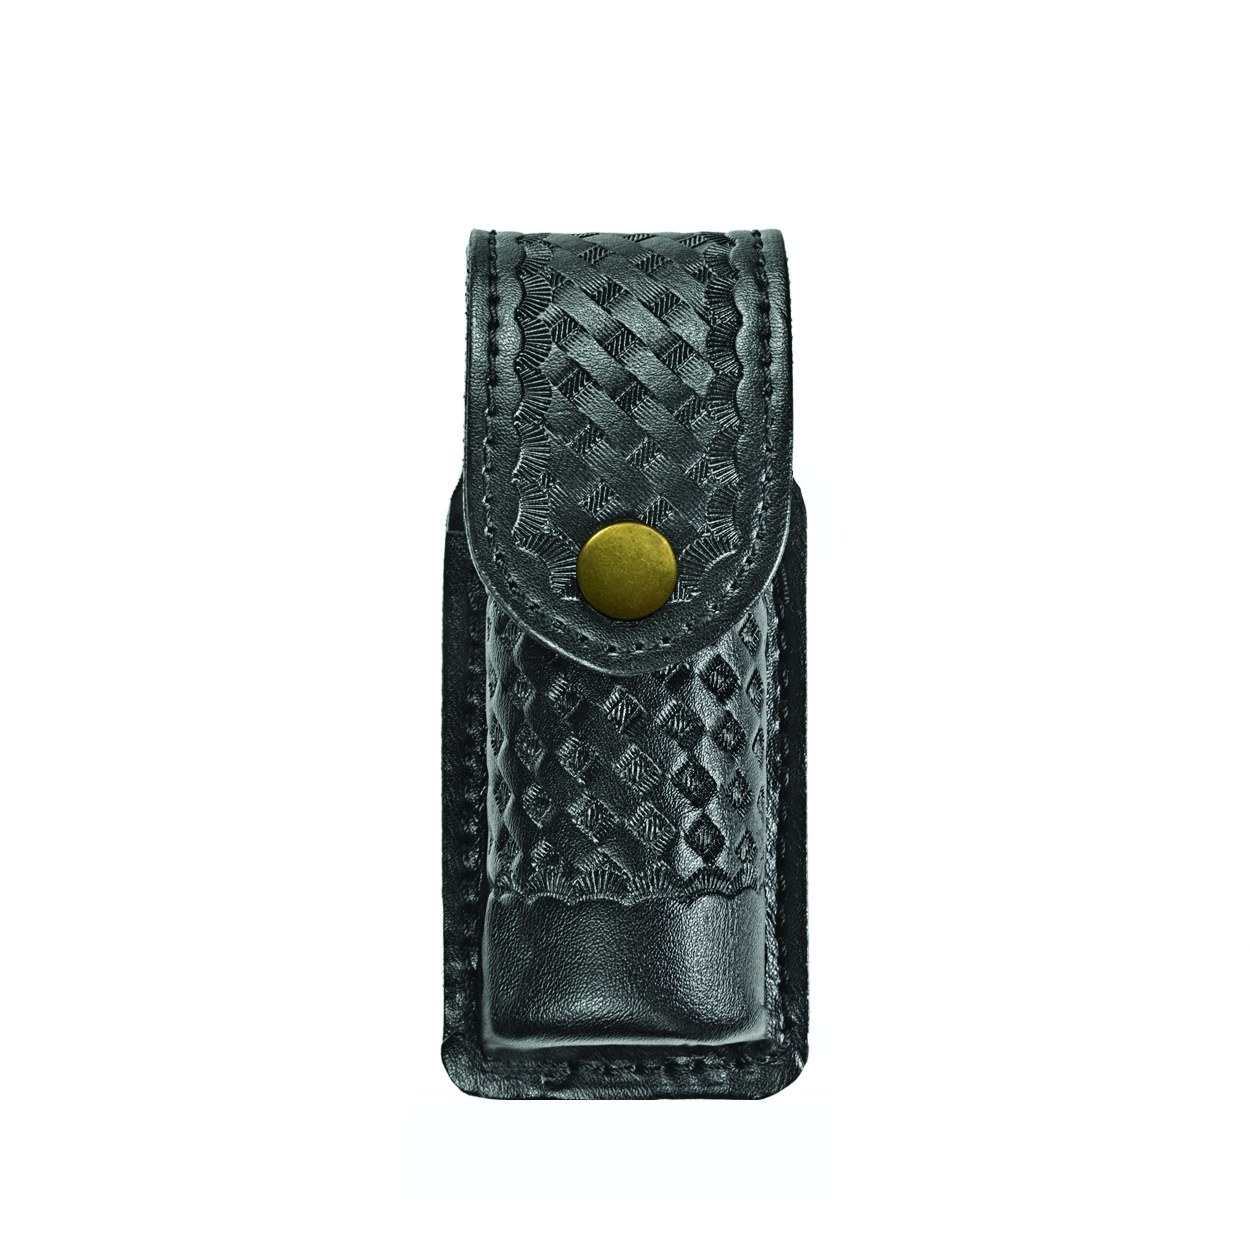 O.C. (Pepper) Spray Case, Small, MK3 (MK2,6), AirTek, BW, Gold Snap-